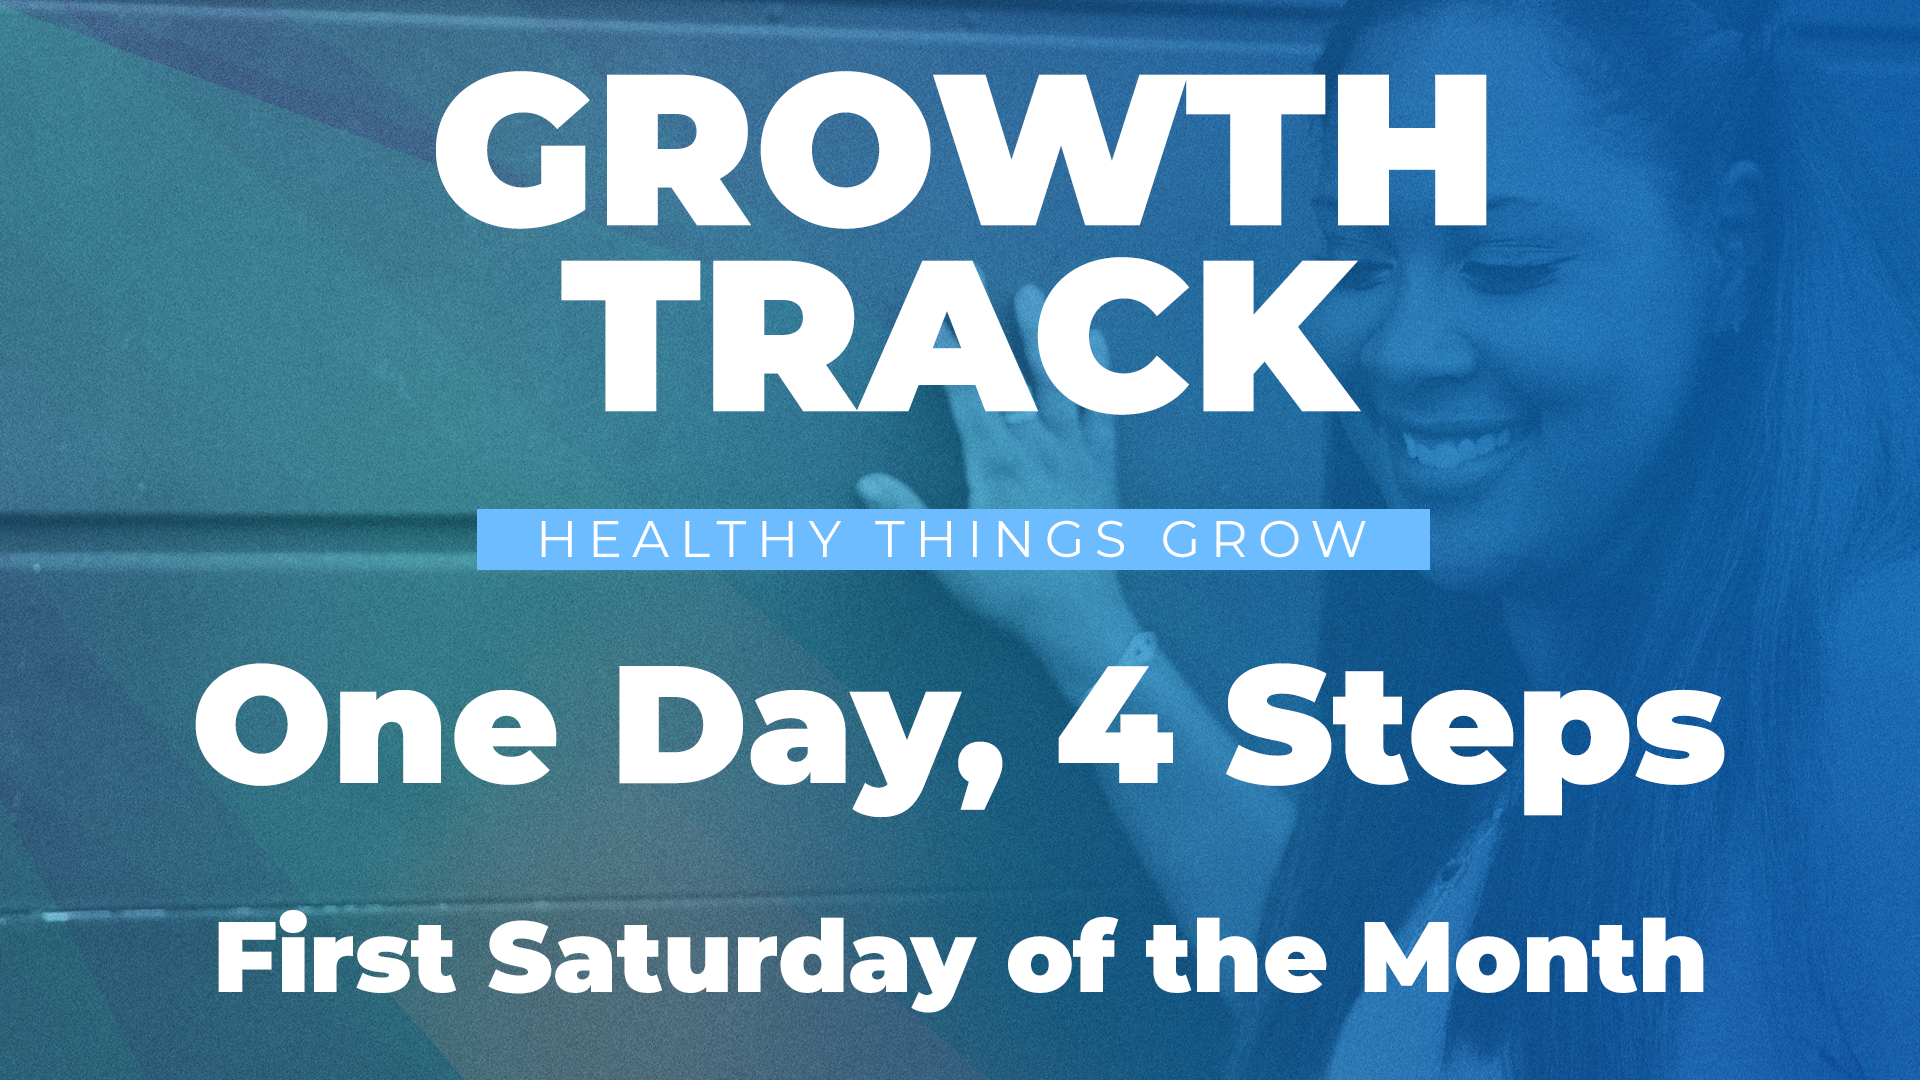 Growth Track One Day.png